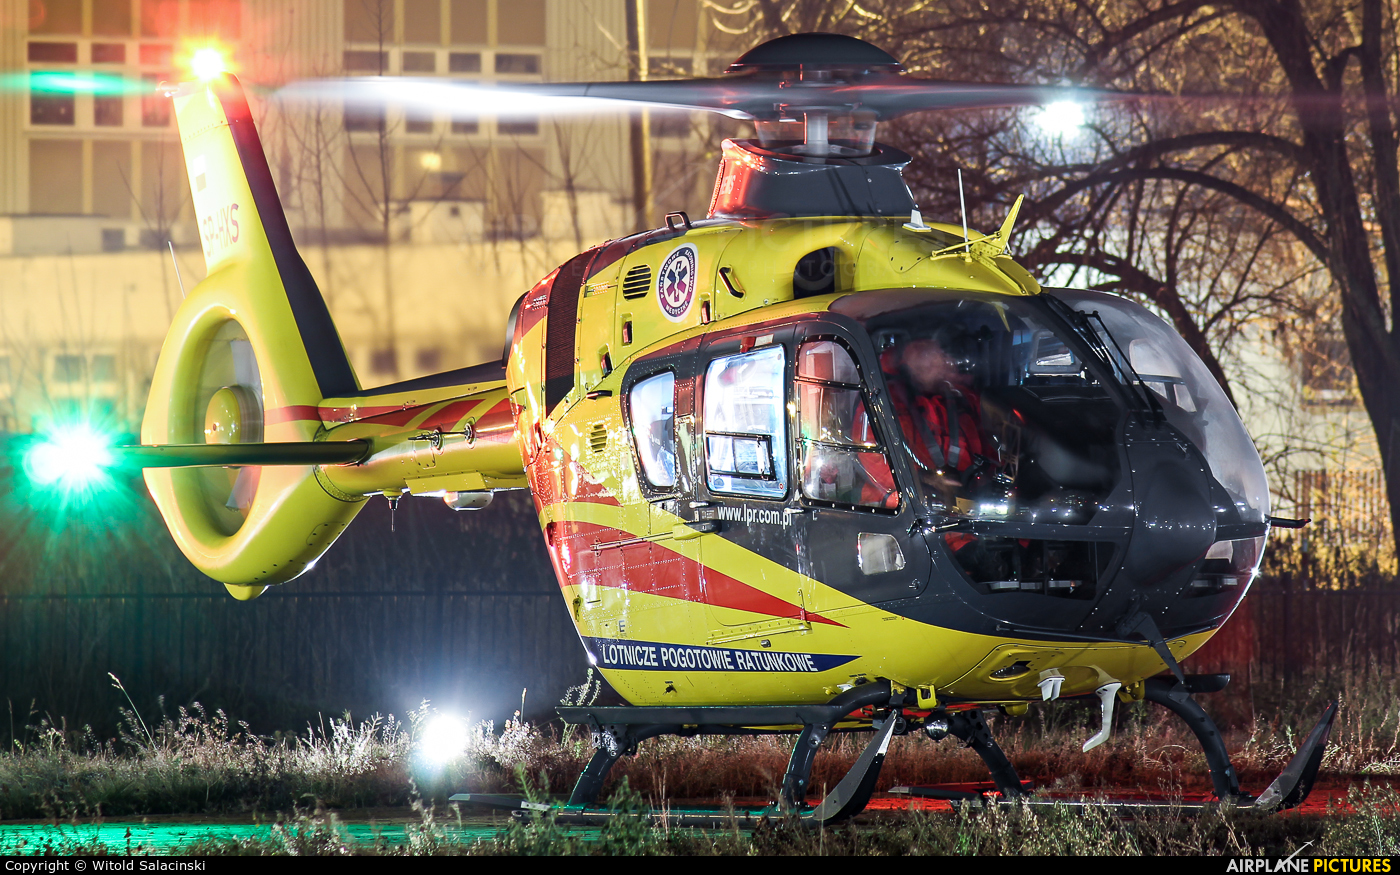 Polish Medical Air Rescue - Lotnicze Pogotowie Ratunkowe SP-HXS aircraft at Warsaw - Off Airport